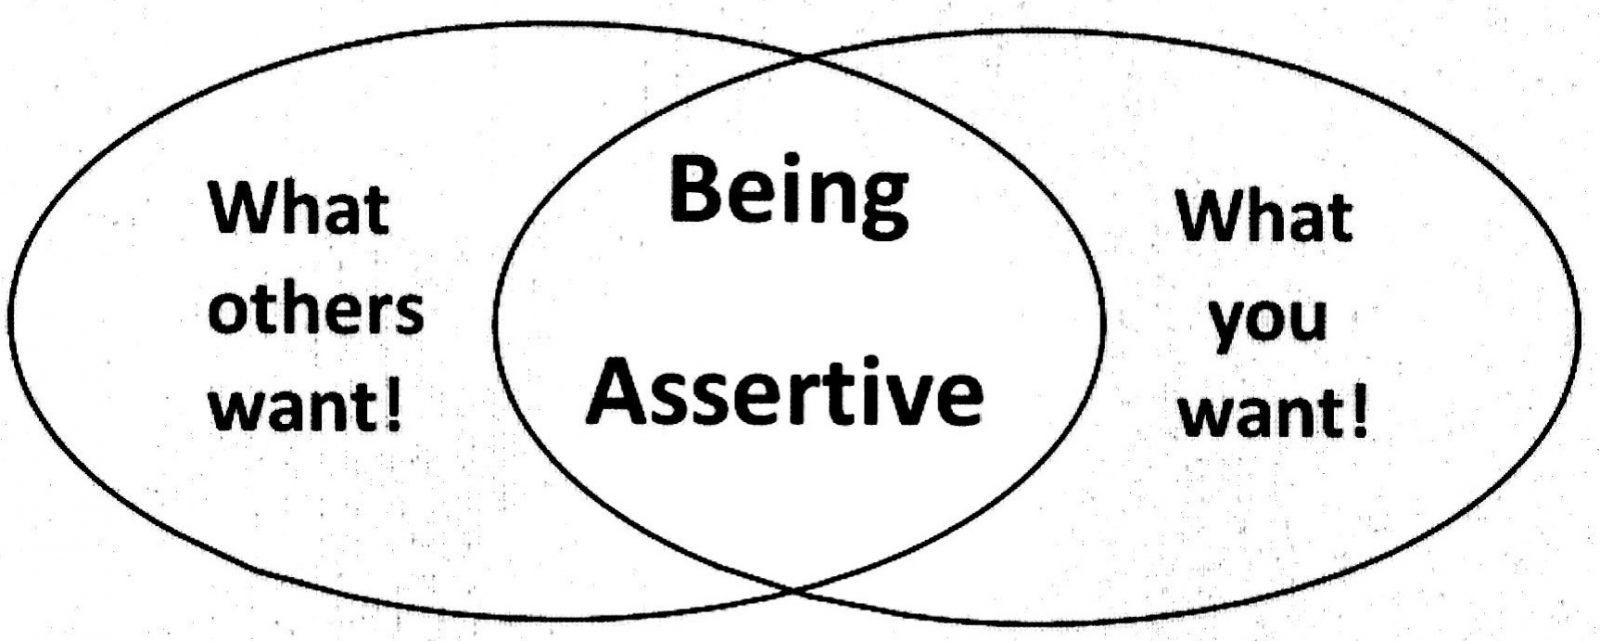 """Being assertive"" - a balance between what others want and what you want"